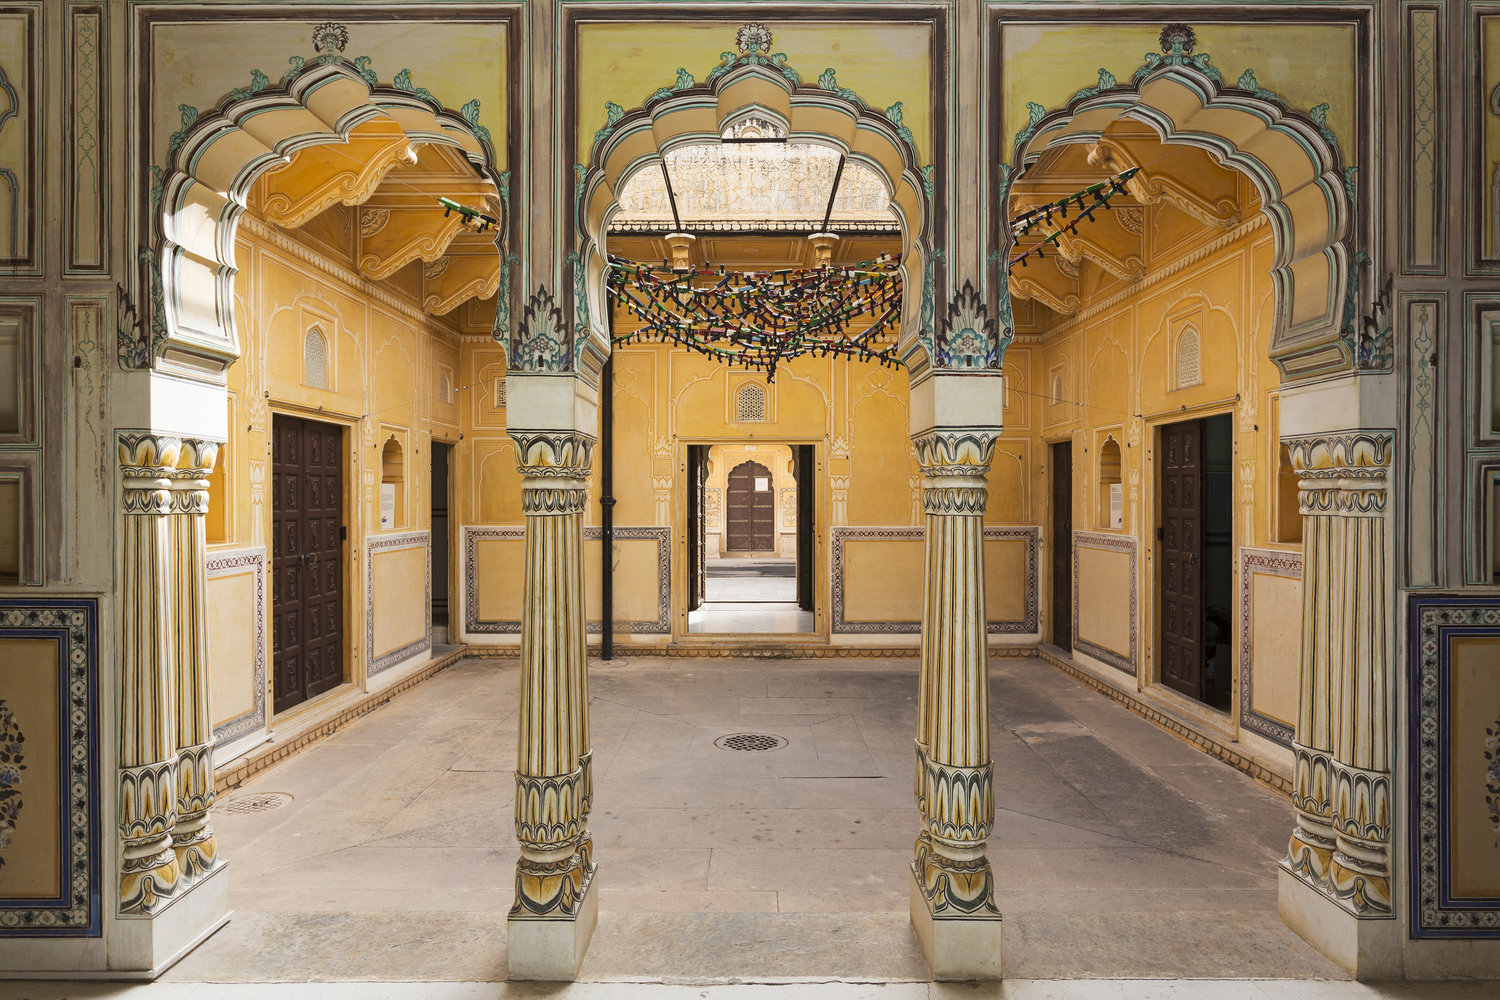 CLOVE  - Sculpture gallery in a Rajasthani fort